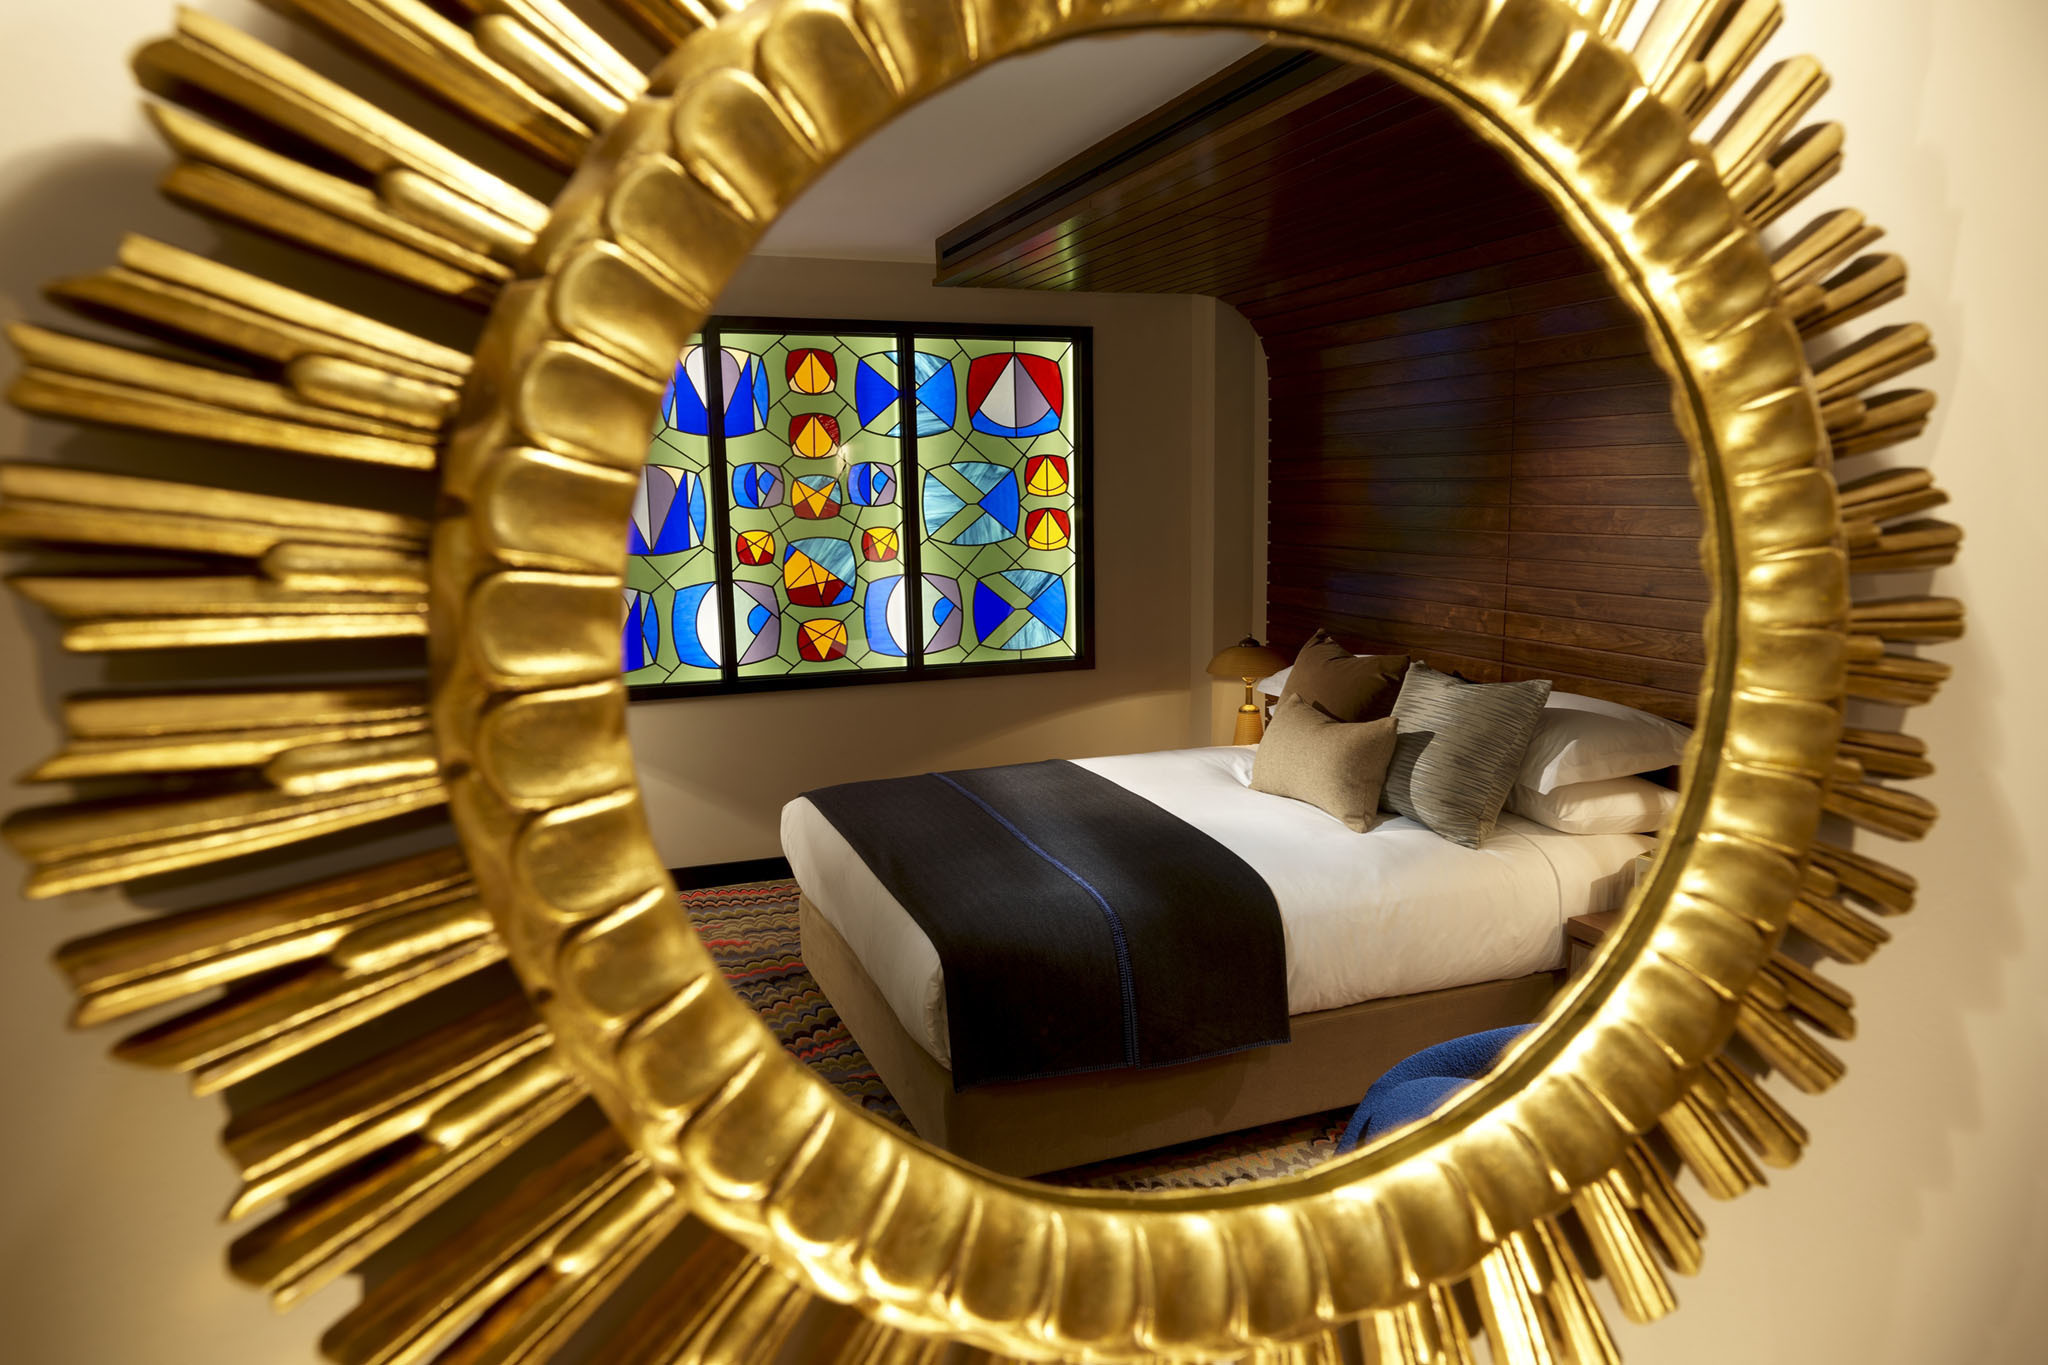 Hospital Clubs Rooms - Best Design Hotels